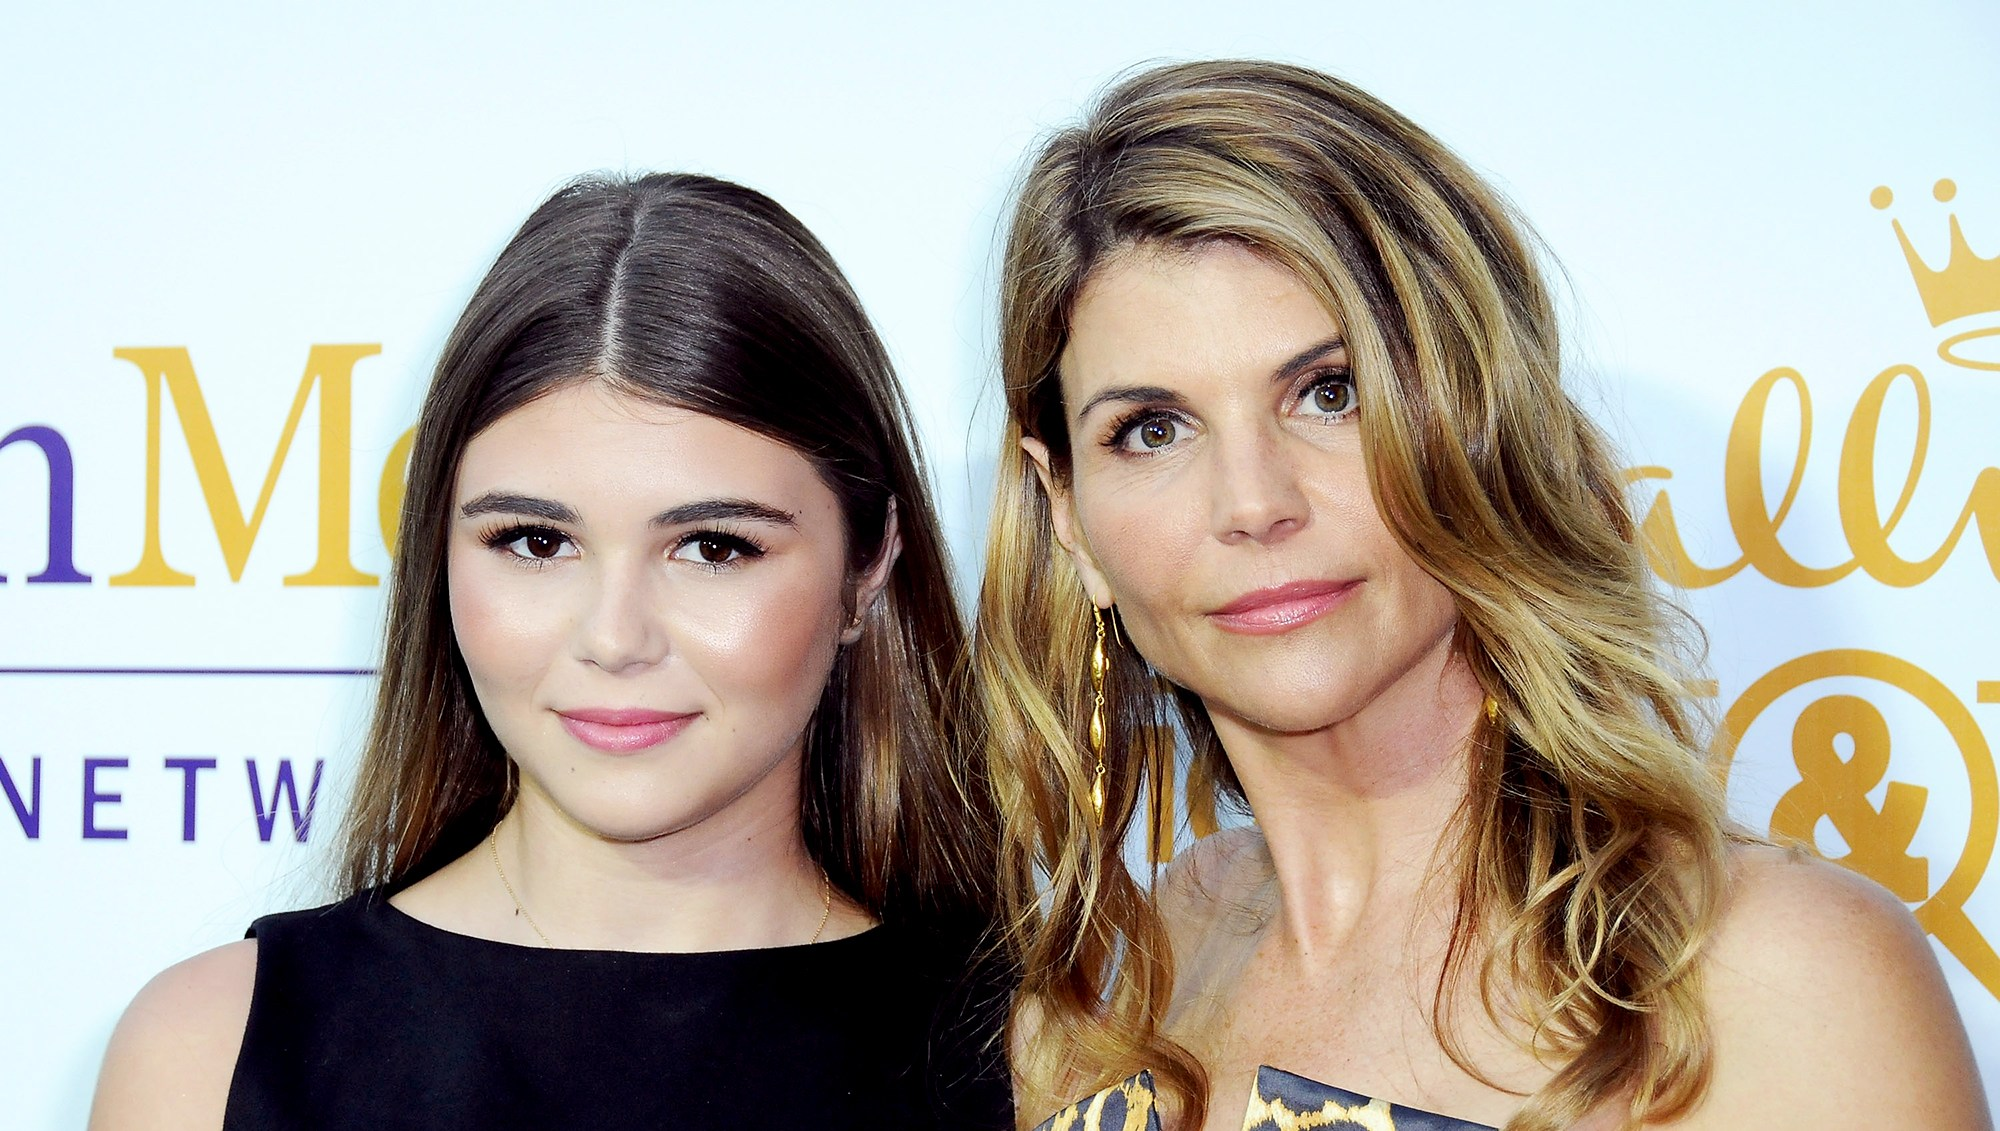 Lori-Loughlin-Olivia-Jade-Giannulli-college-scam-careers